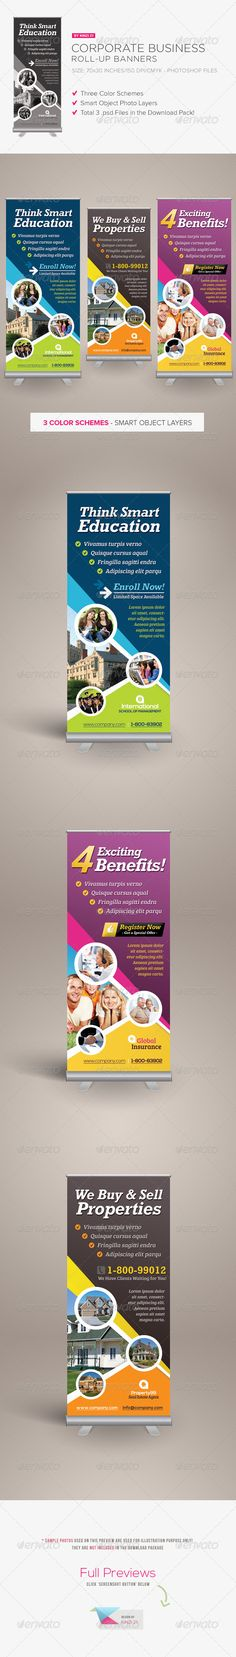 Corporate Business Roll-up Banner Template PSD. Download here: http://graphicriver.net/item/corporate-business-rollup-banner/3740415?s_rank=46&ref=yinkira